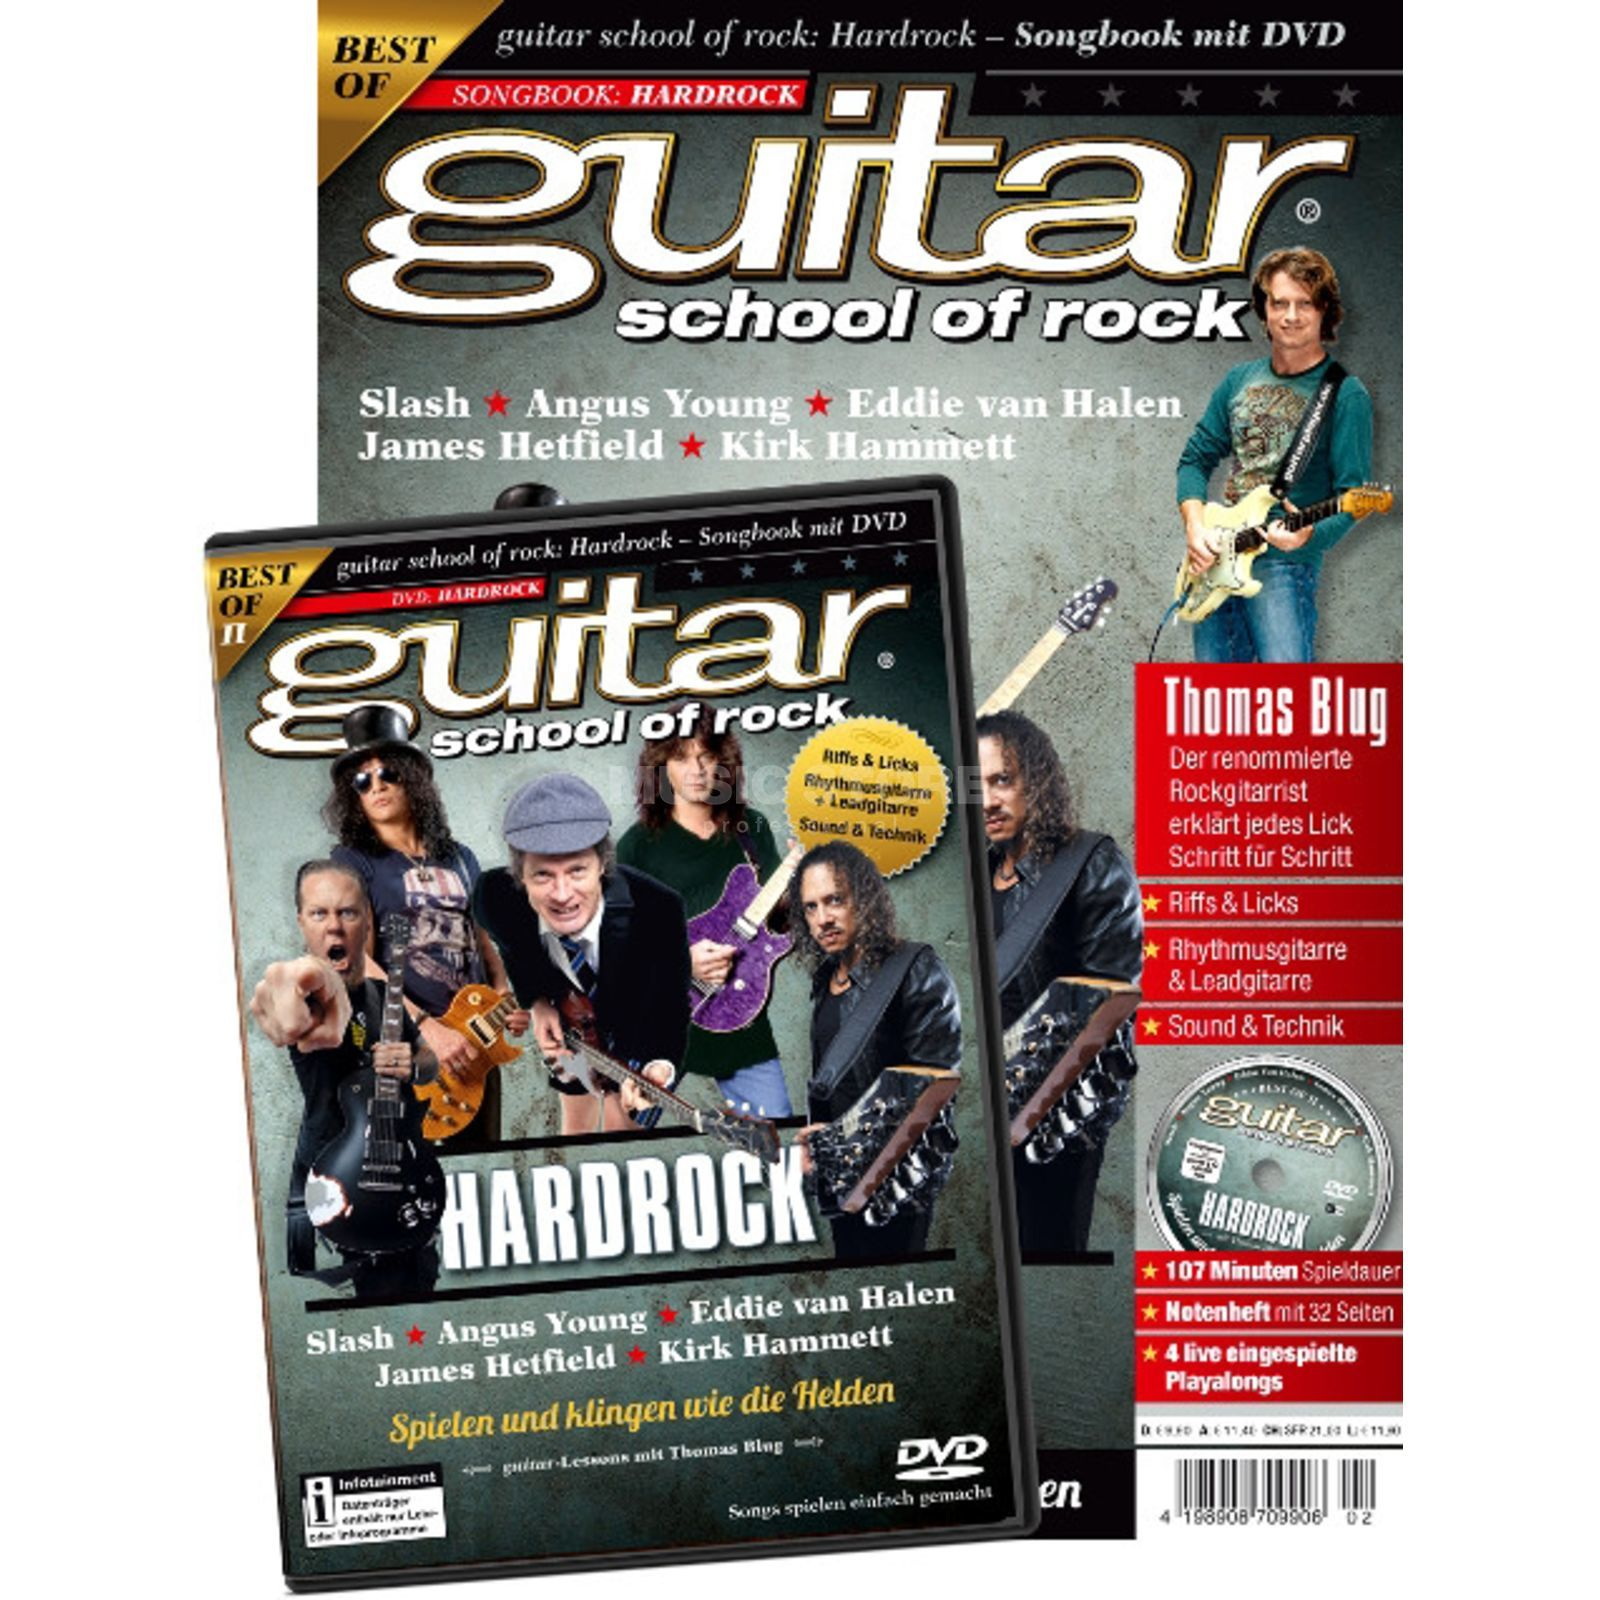 PPV Medien guitar school of rock: Hard Rock Songbook mit DVD Produktbillede